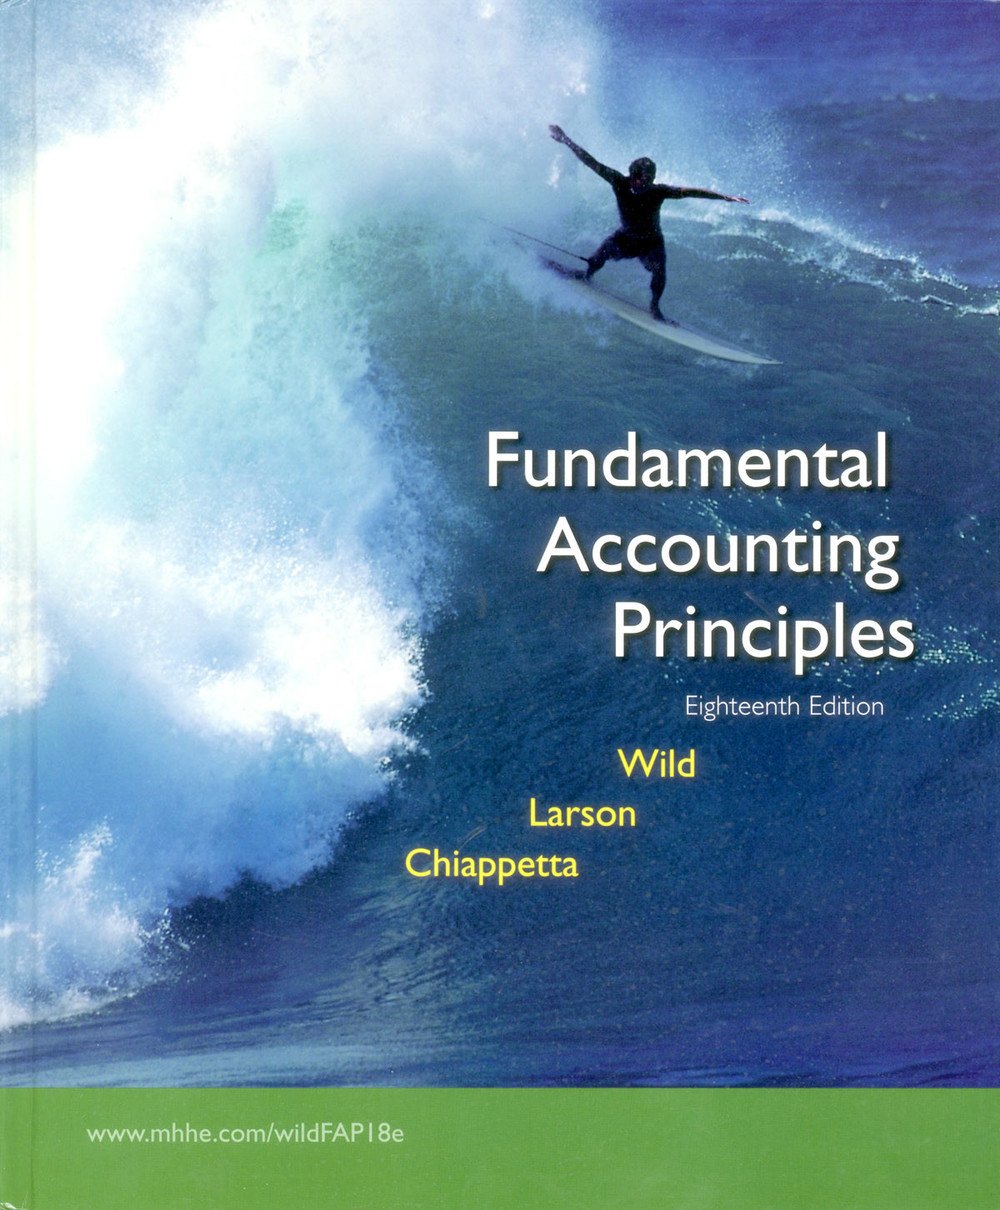 Feature in Fundamental Accounting Principles